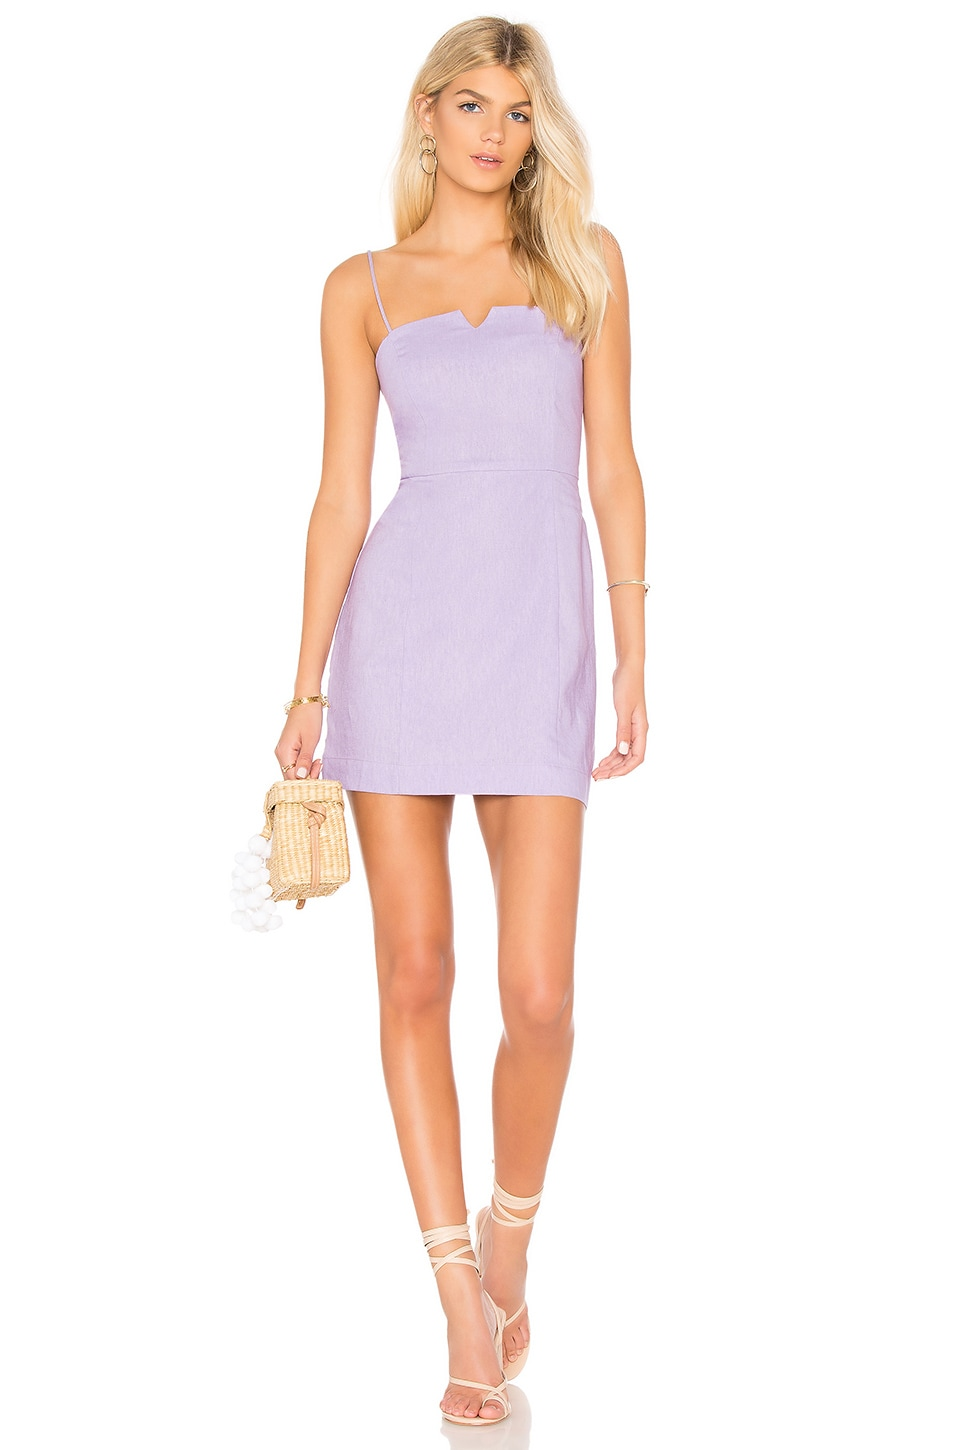 Clayton Carol Dress in Lilac